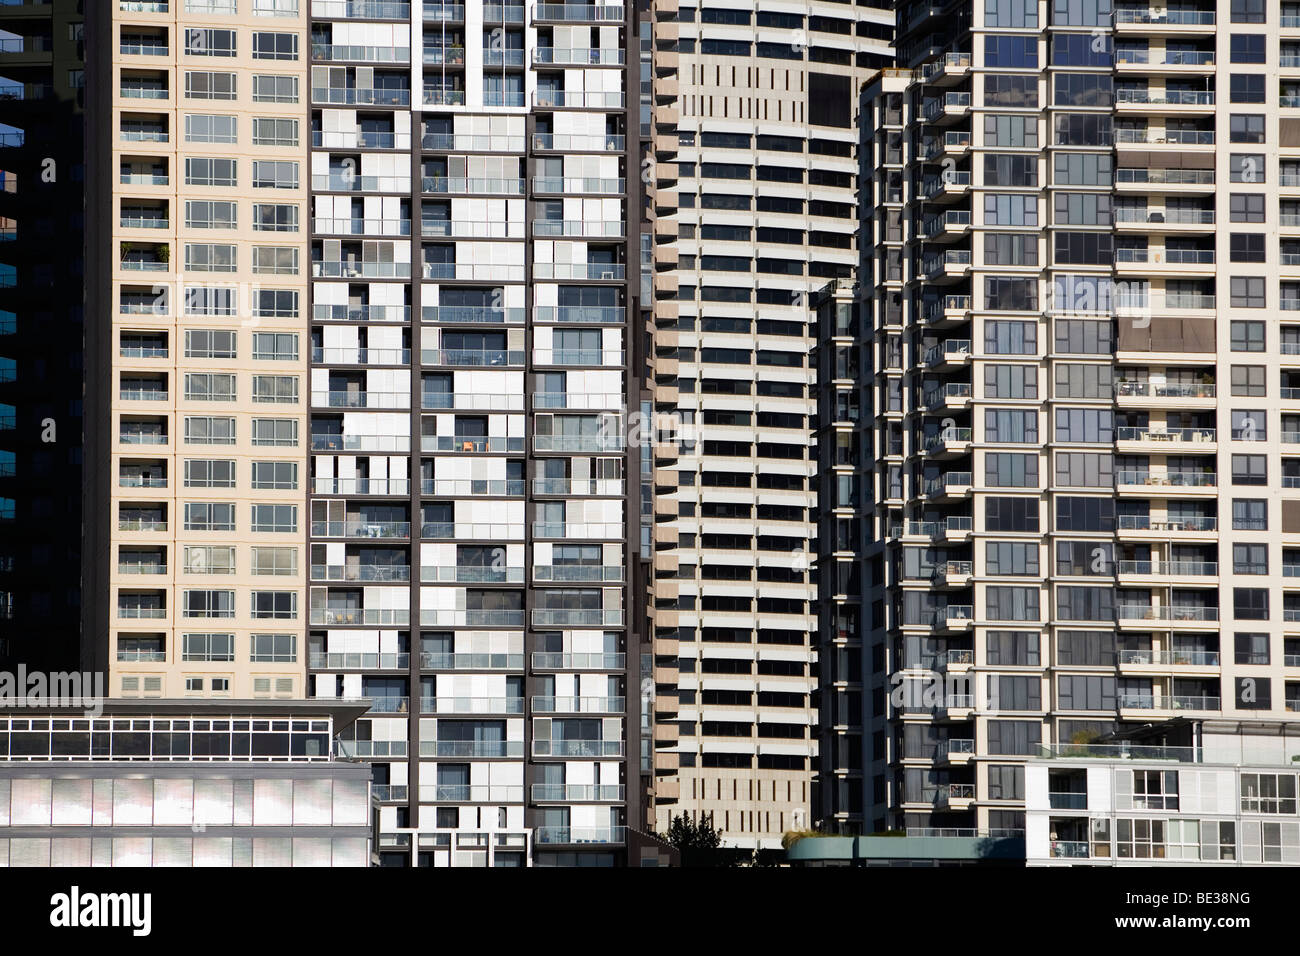 Apartment blocks on Darling Harbour in central Sydney, New South Wales, AUSTRALIA - Stock Image